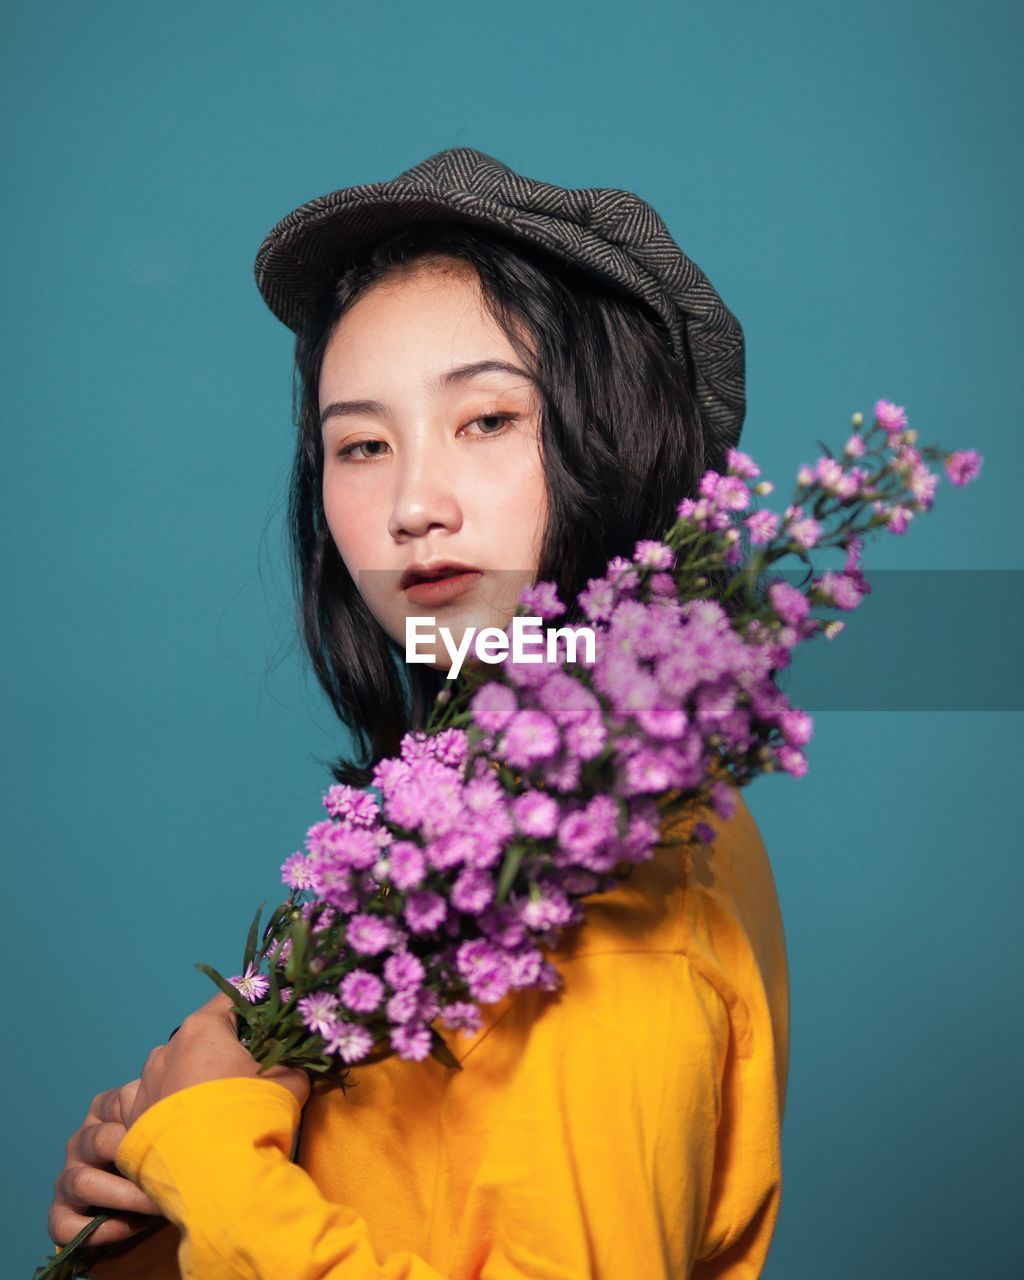 Portrait of beautiful young woman holding flowers against colored background